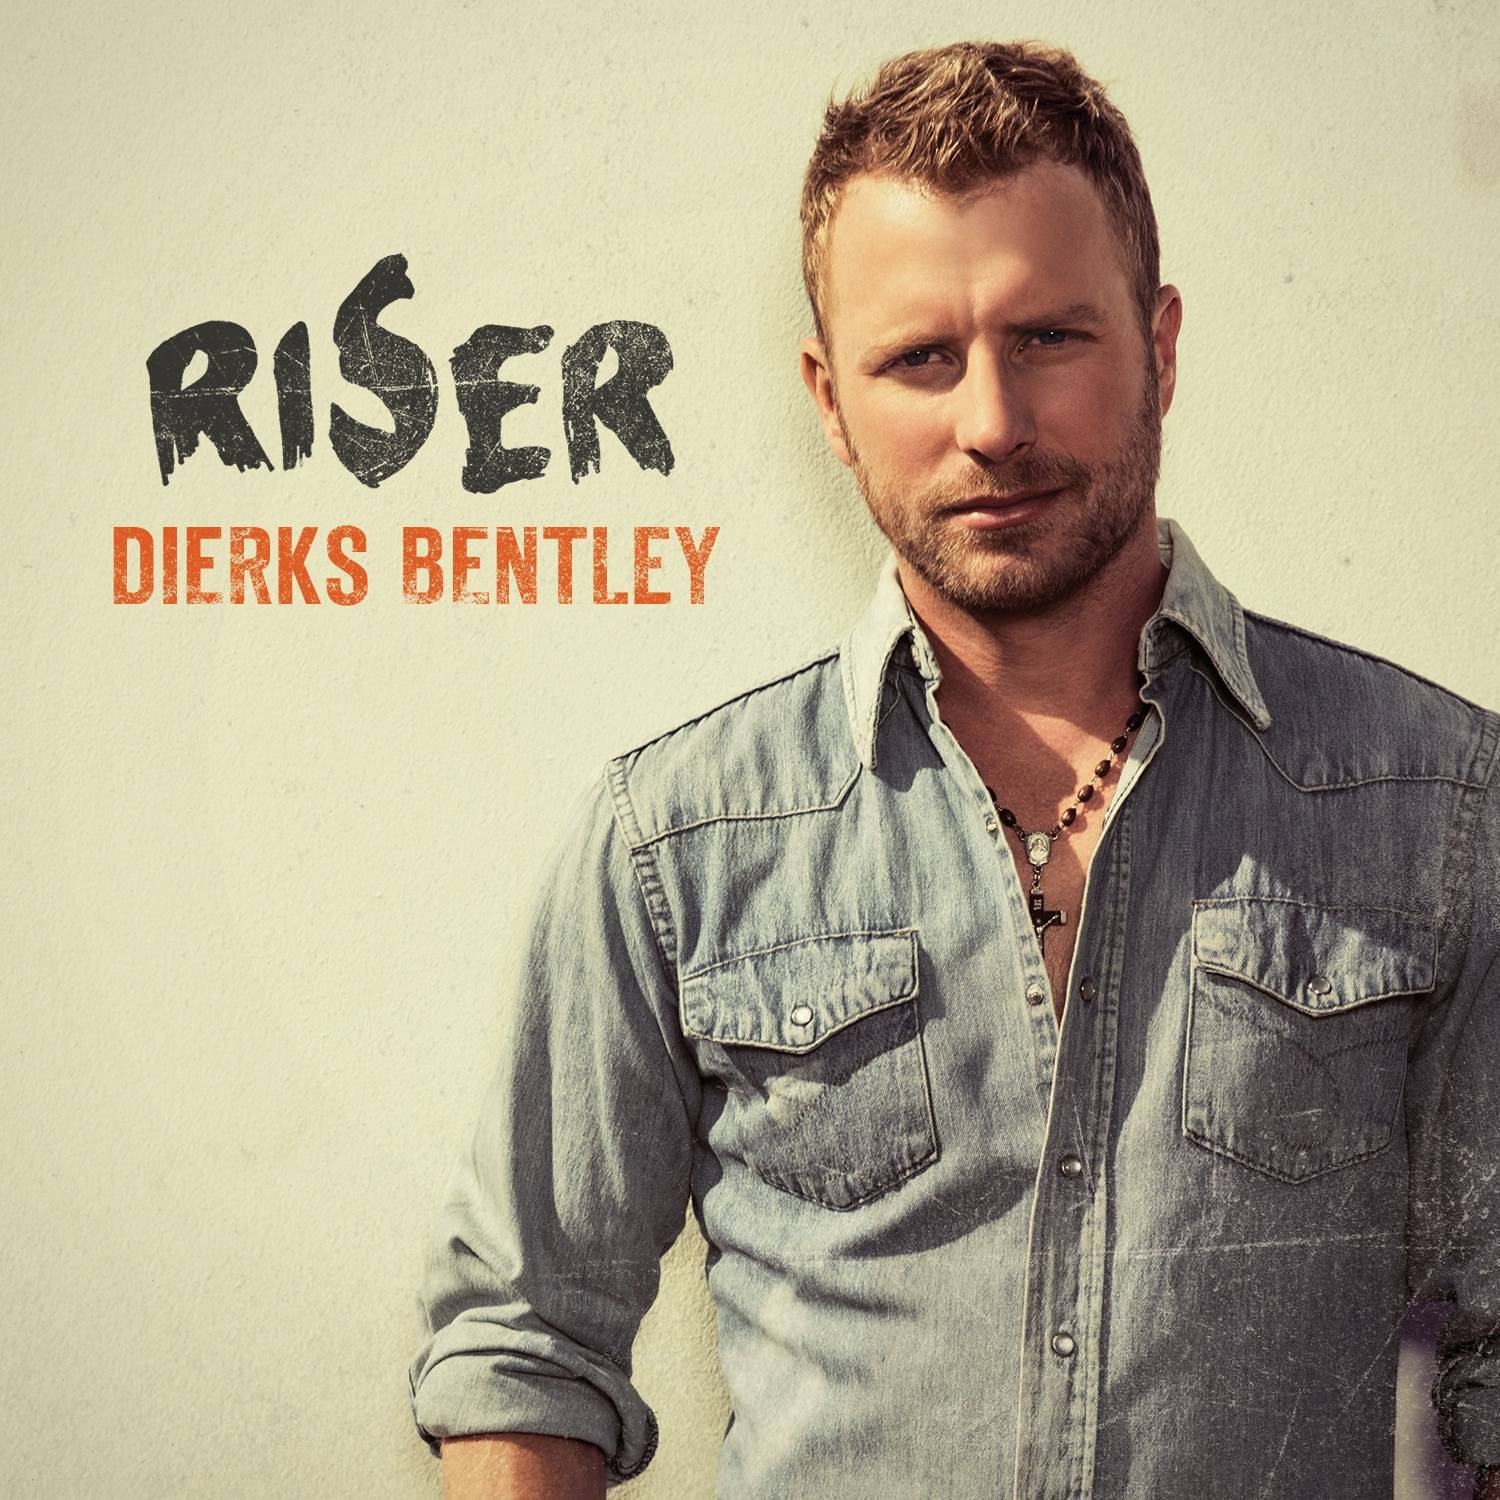 """Riser"" is the seventh album from Dierks Bentley."